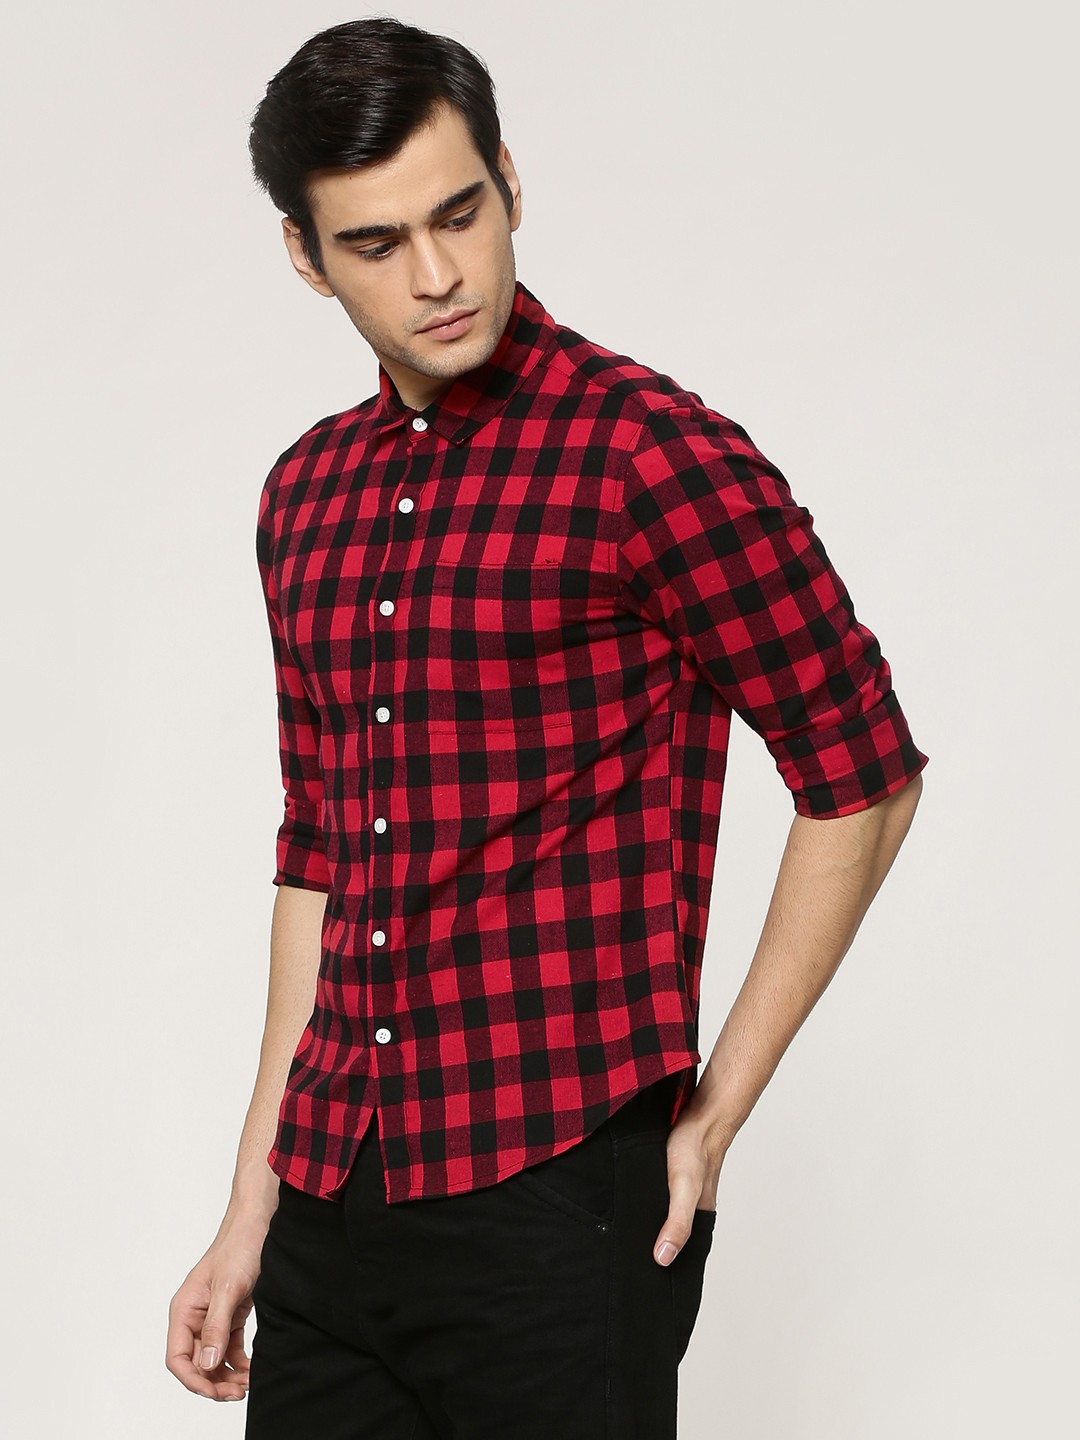 Buy buffalo check shirt for men men 39 s red casual shirts for Where to buy casual dress shirts